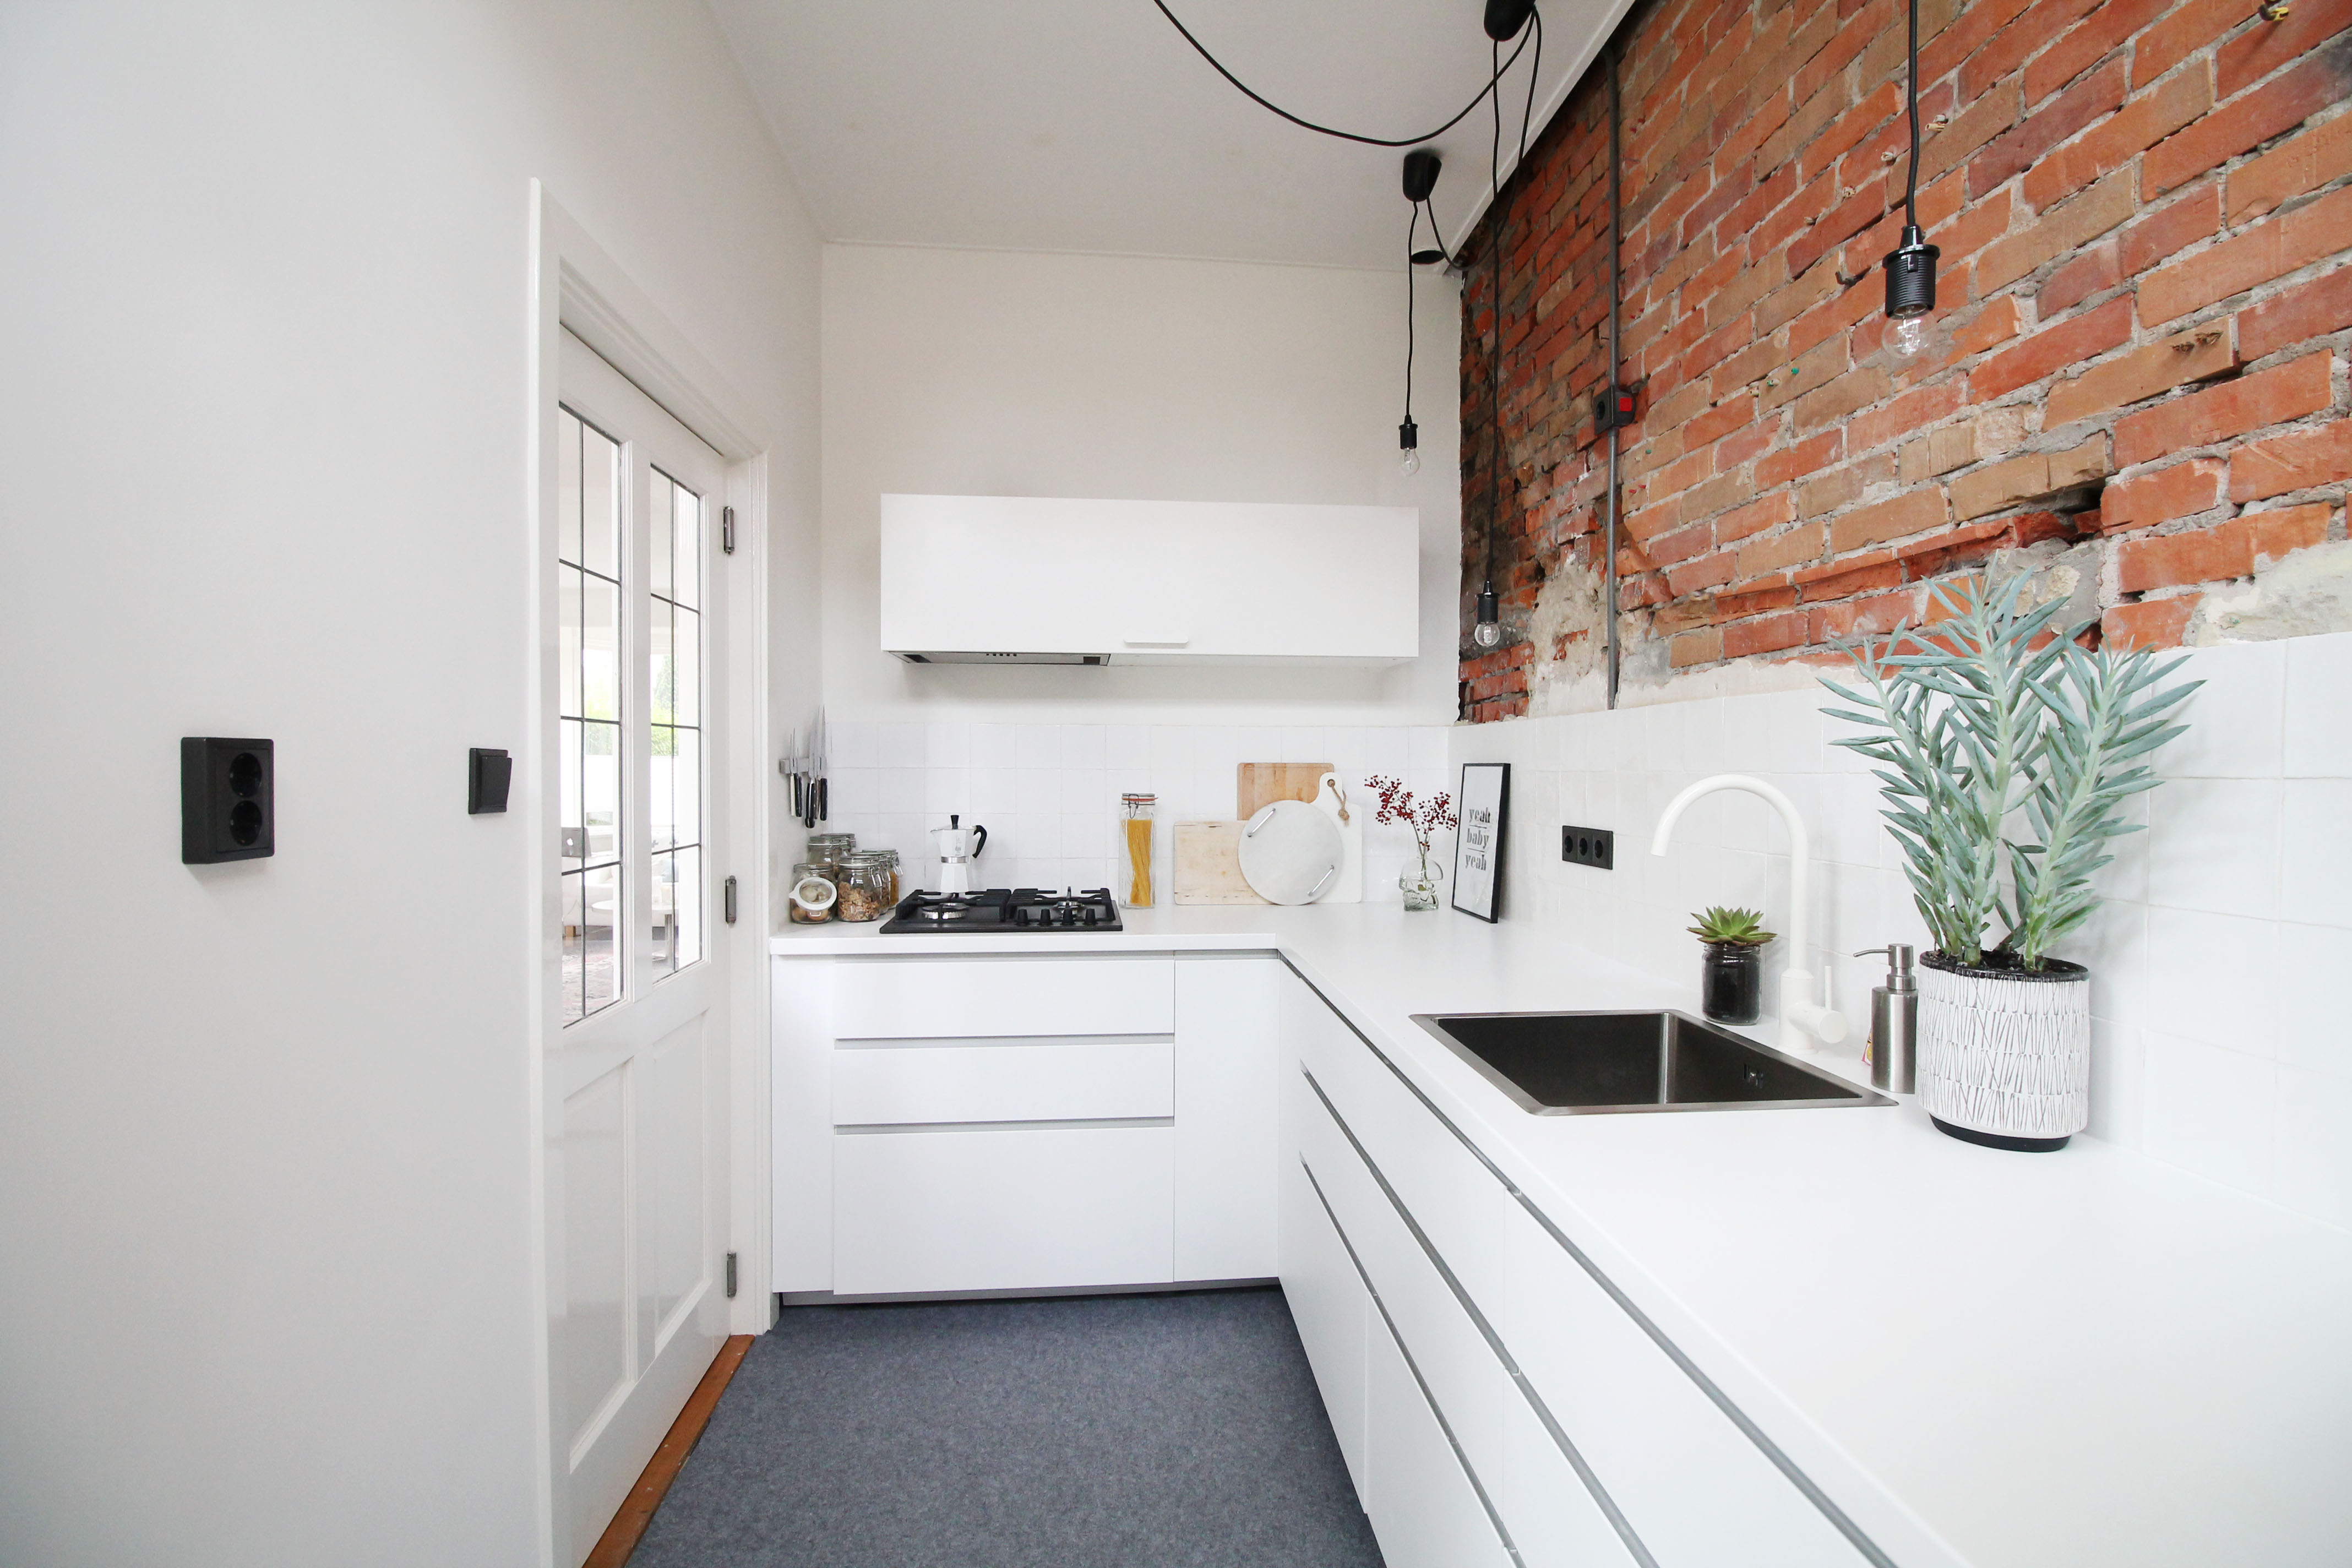 Renovating pt 15 our kitchen donebymyself for Interieur huis